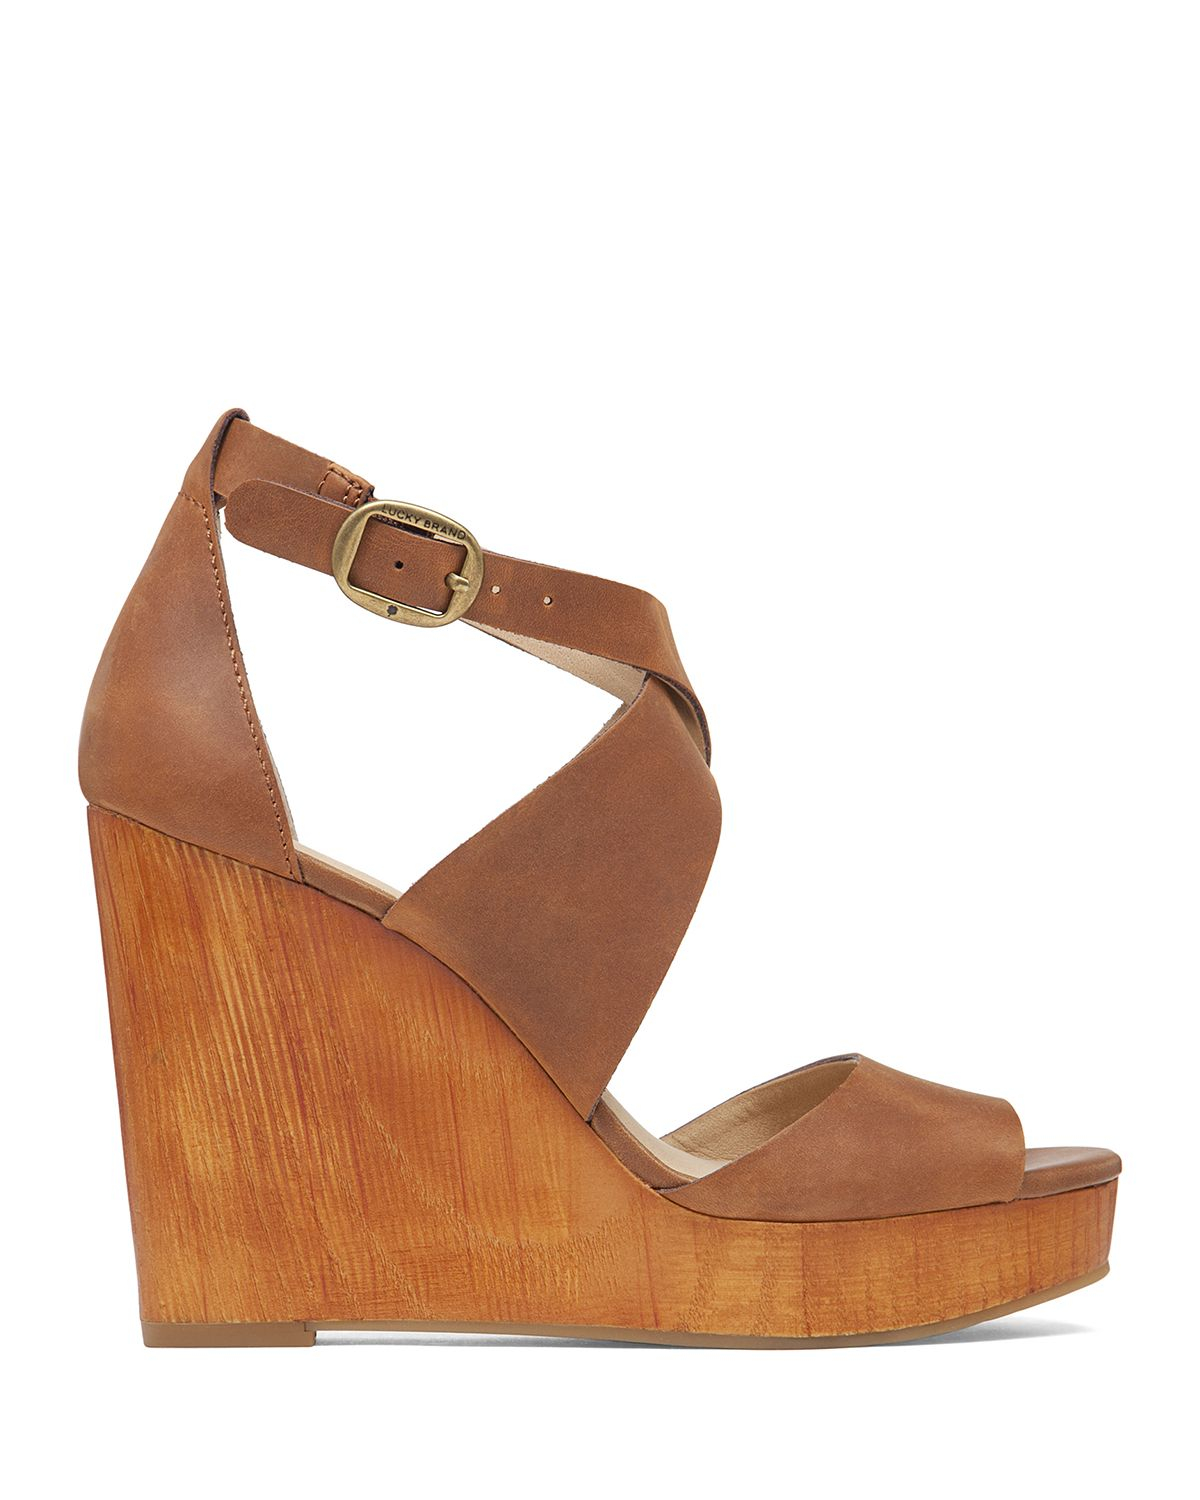 7ce1e3c48e2 Lyst - Lucky Brand Wedge Sandals - Lyndell in Brown